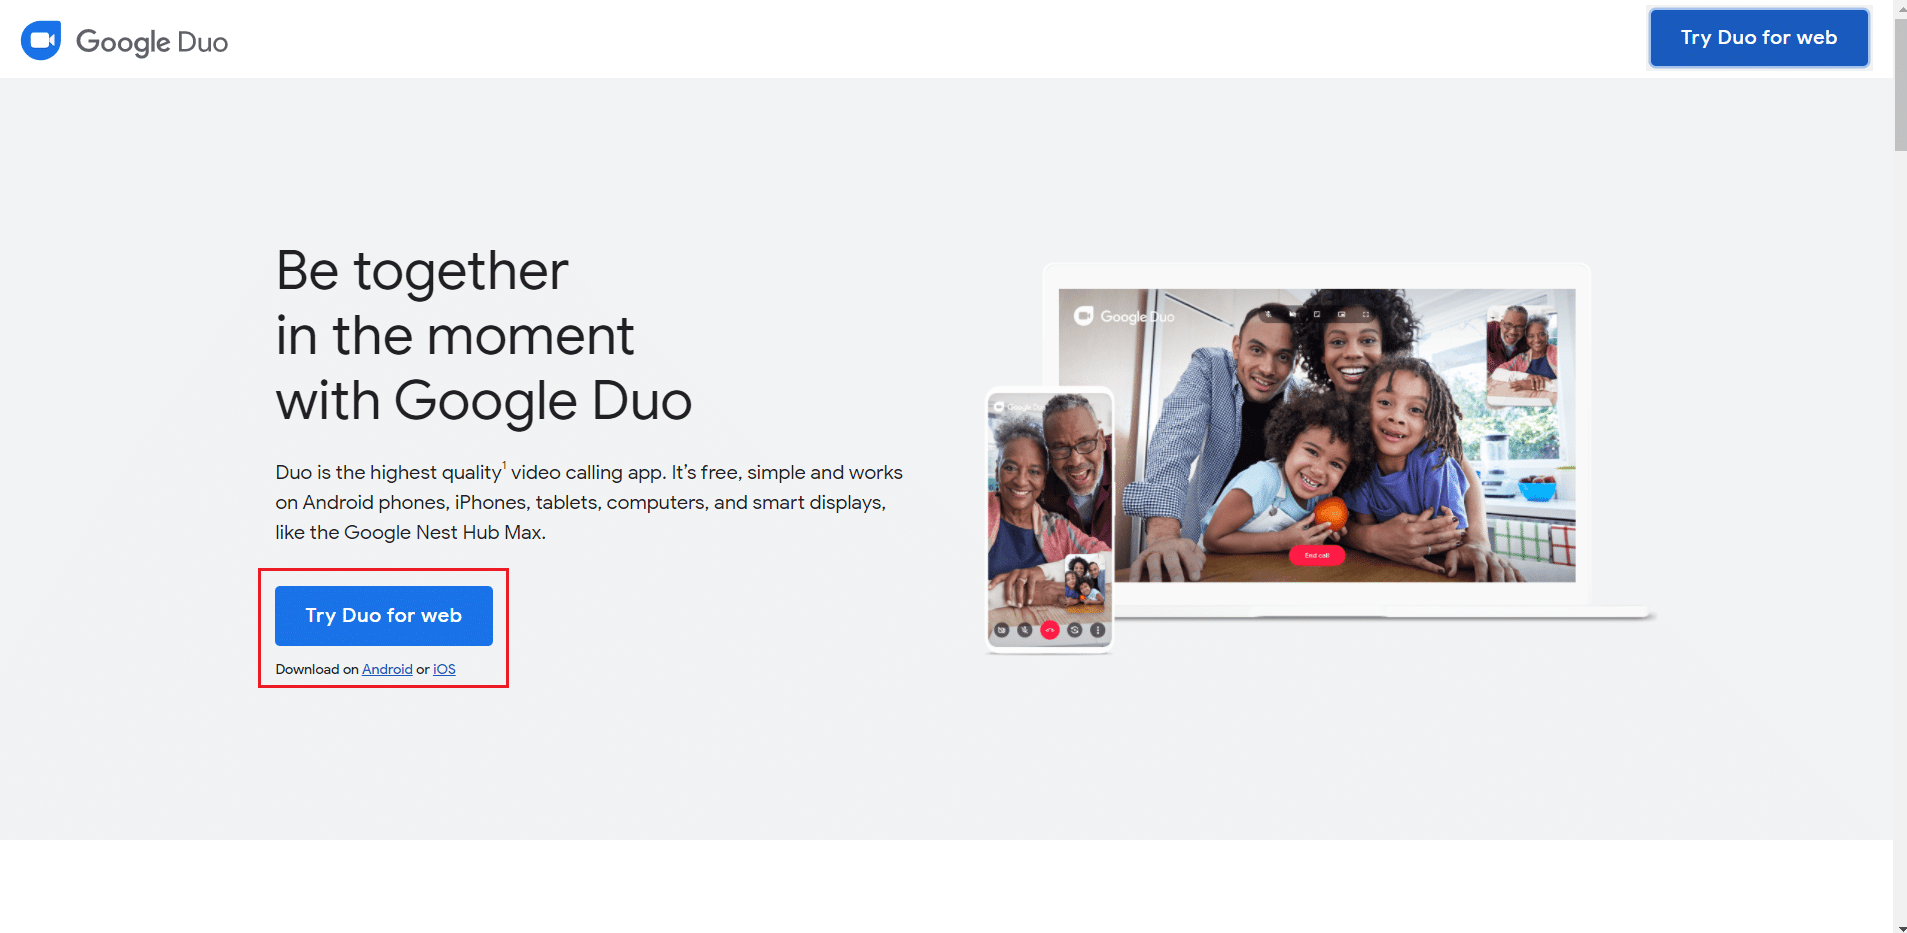 Click on try duo for web